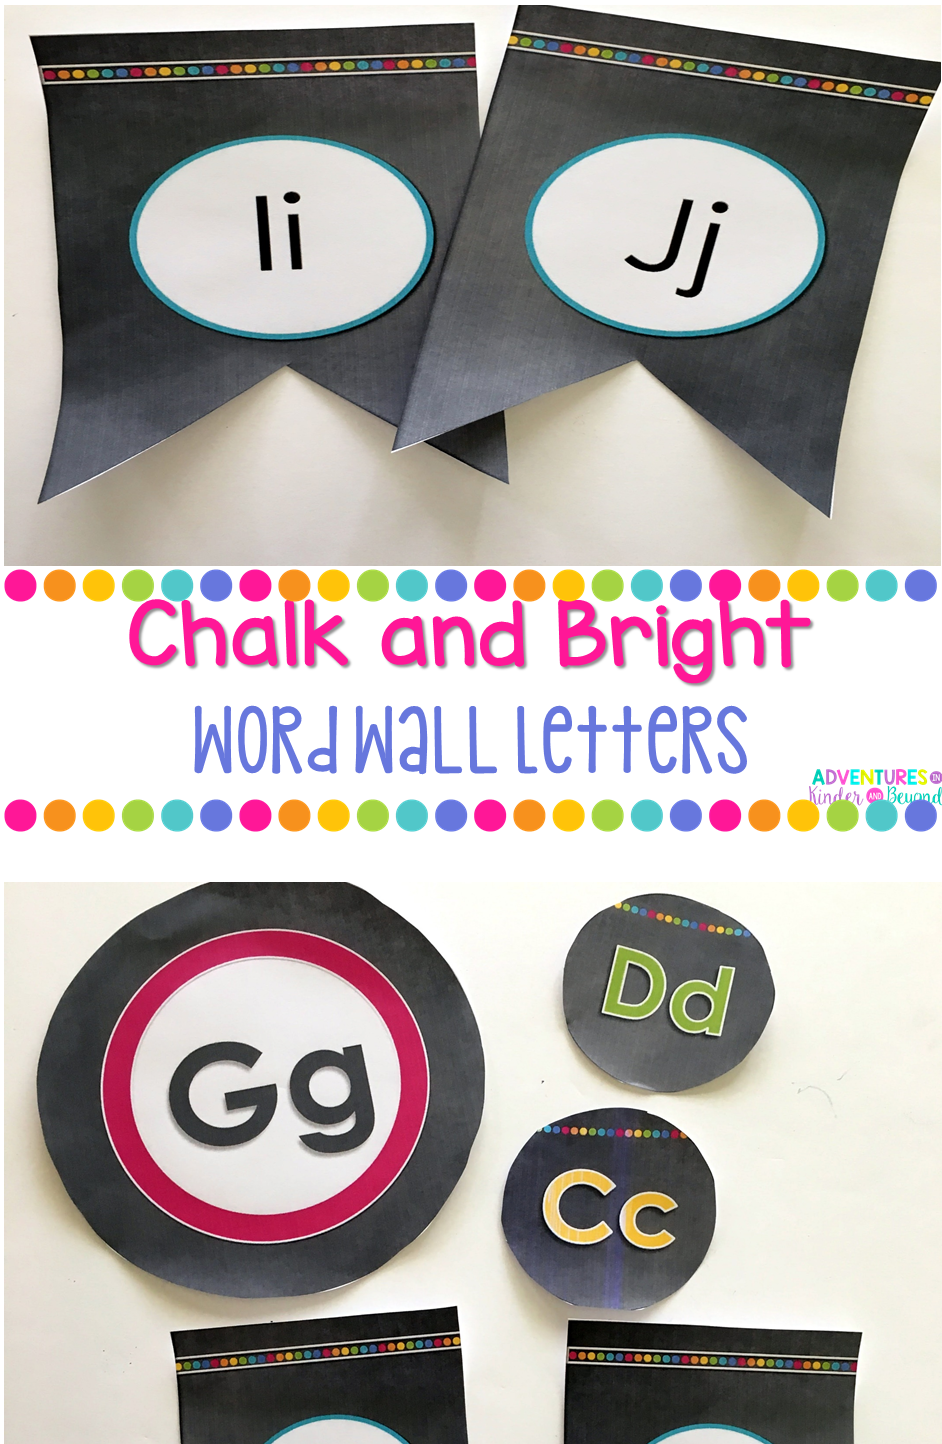 Word Wall Letters Amazing Chalk And Bright Word Wall Letters  Word Wall Letters And Lower Design Inspiration